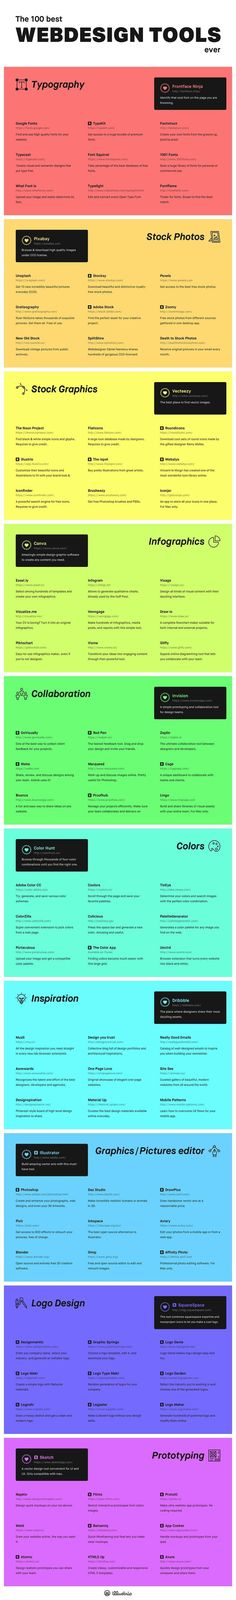 Compiled and designed by Illustrio, the following infographic features 100 of the best web design tools ever.